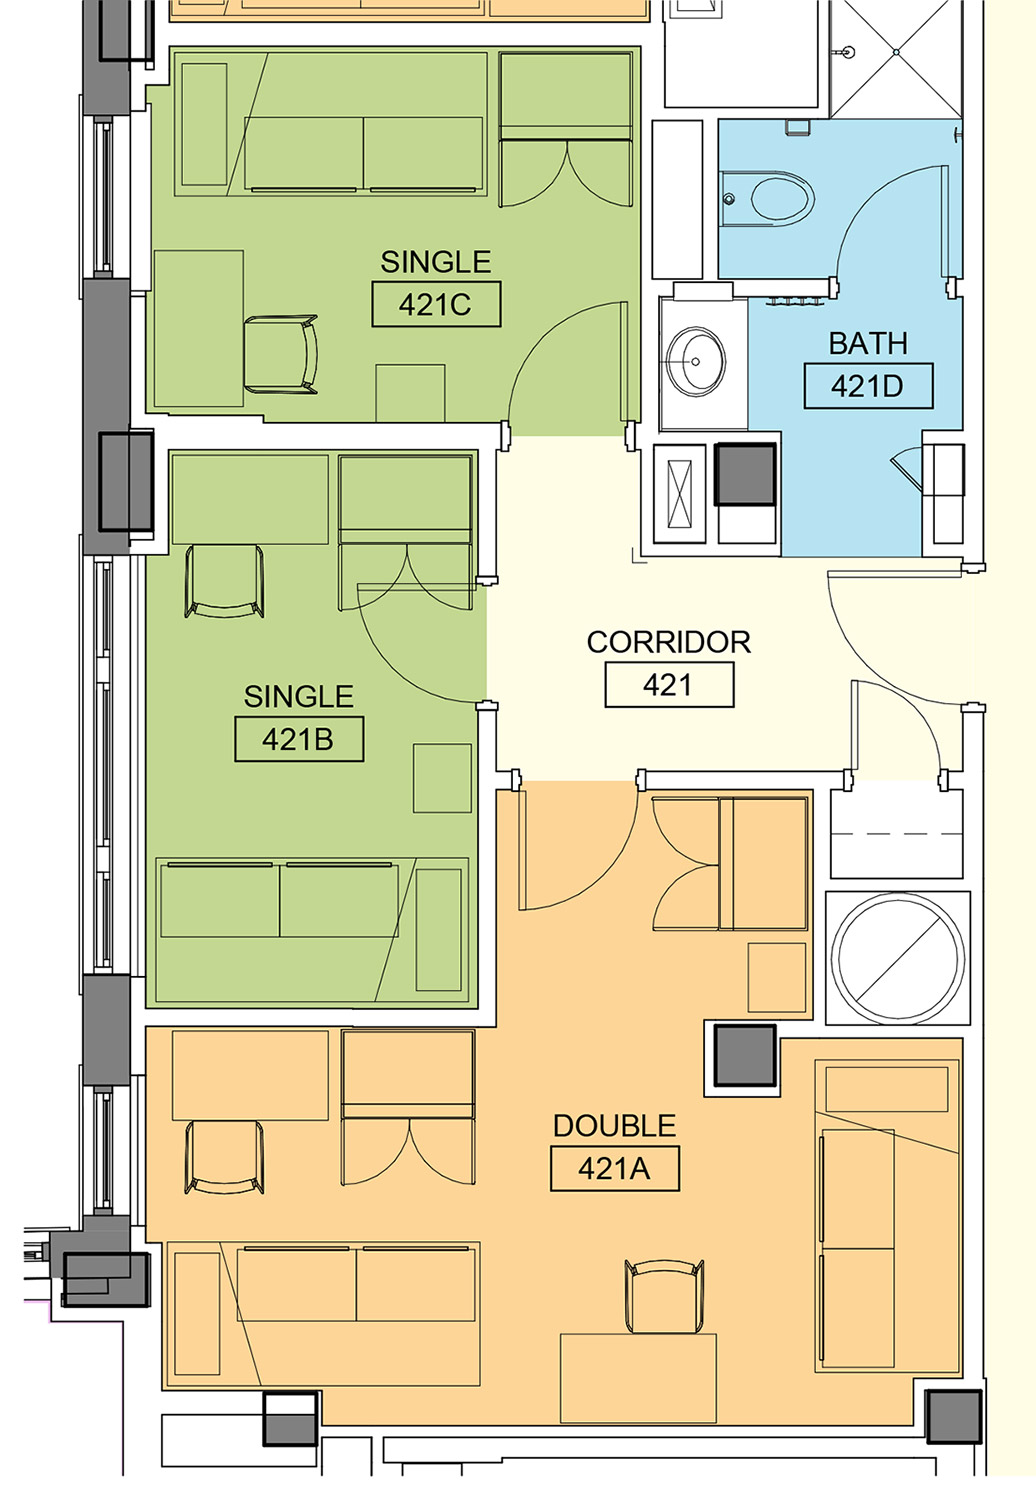 Typical Four-Person Suite